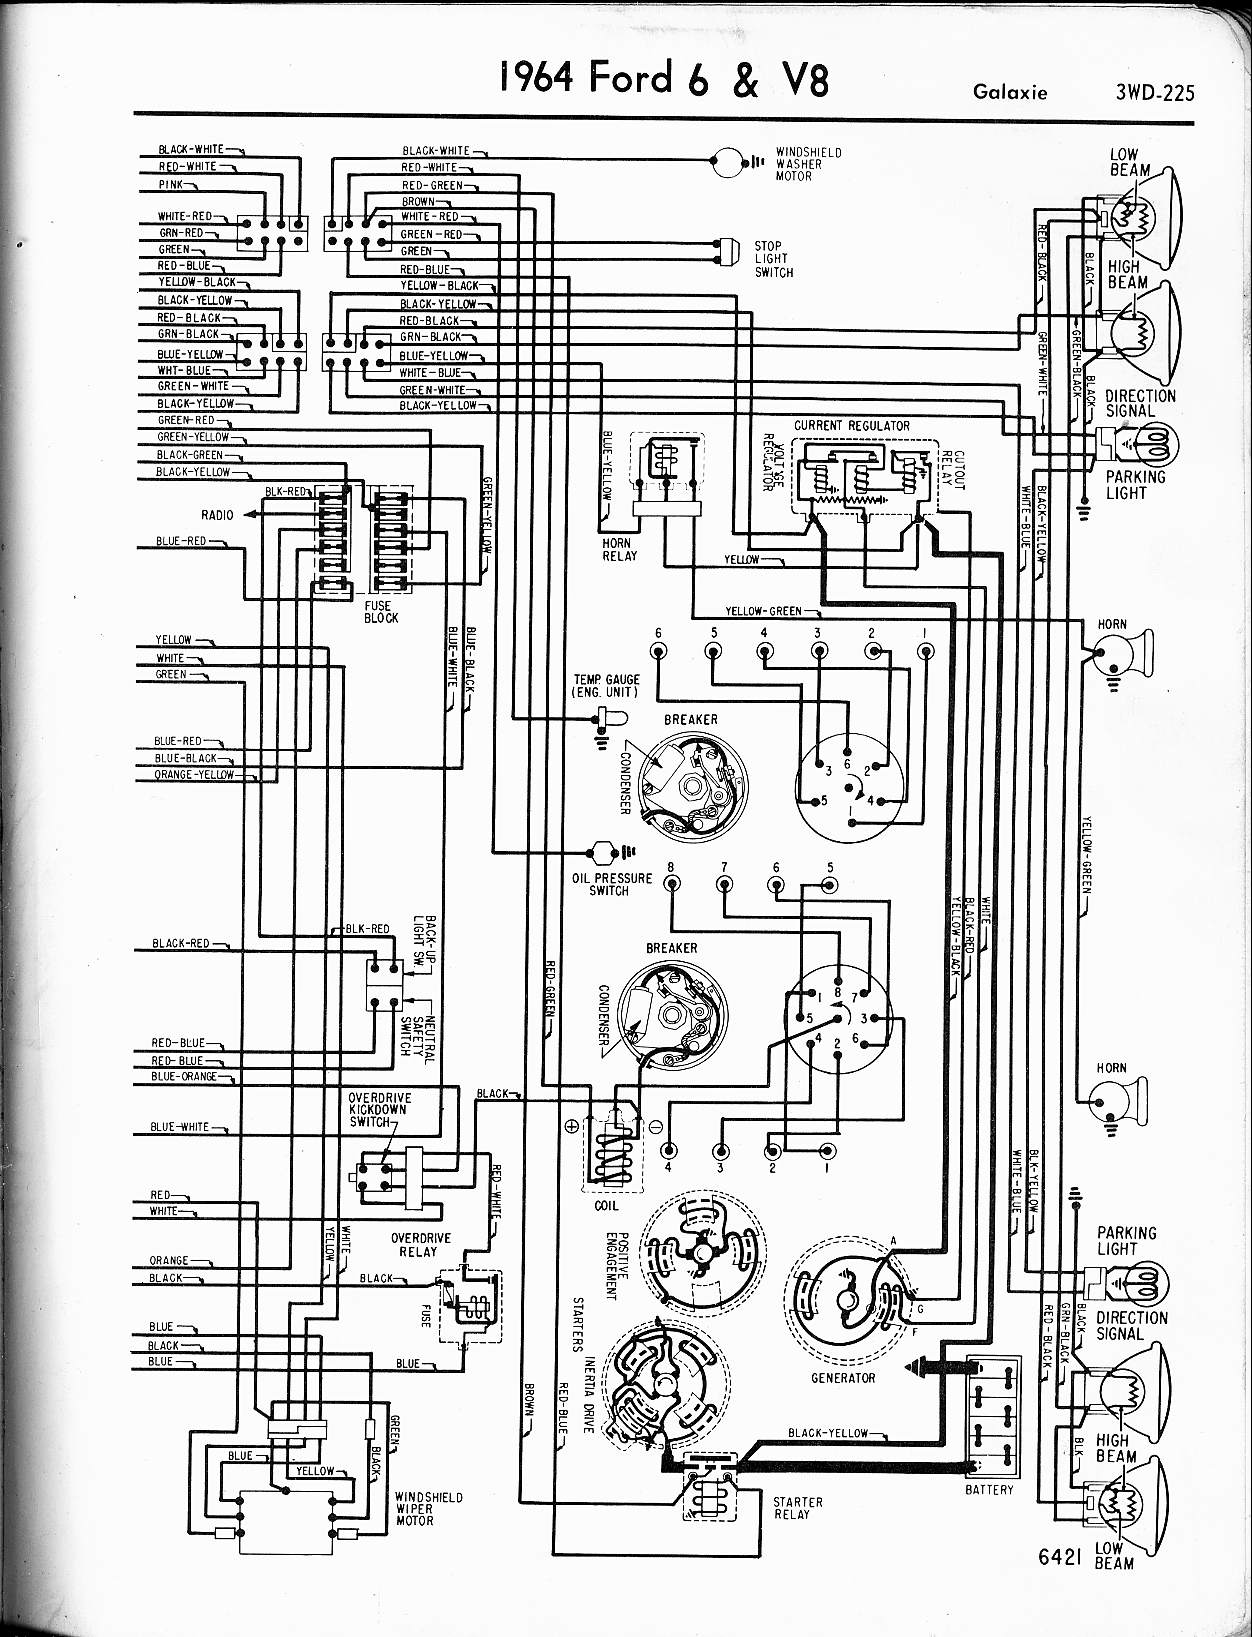 Golf Cart Radio Wiring Diagram Library Club On Car Carts My 1964 Ford Galaxie Reinvent Your U2022 1960 F100